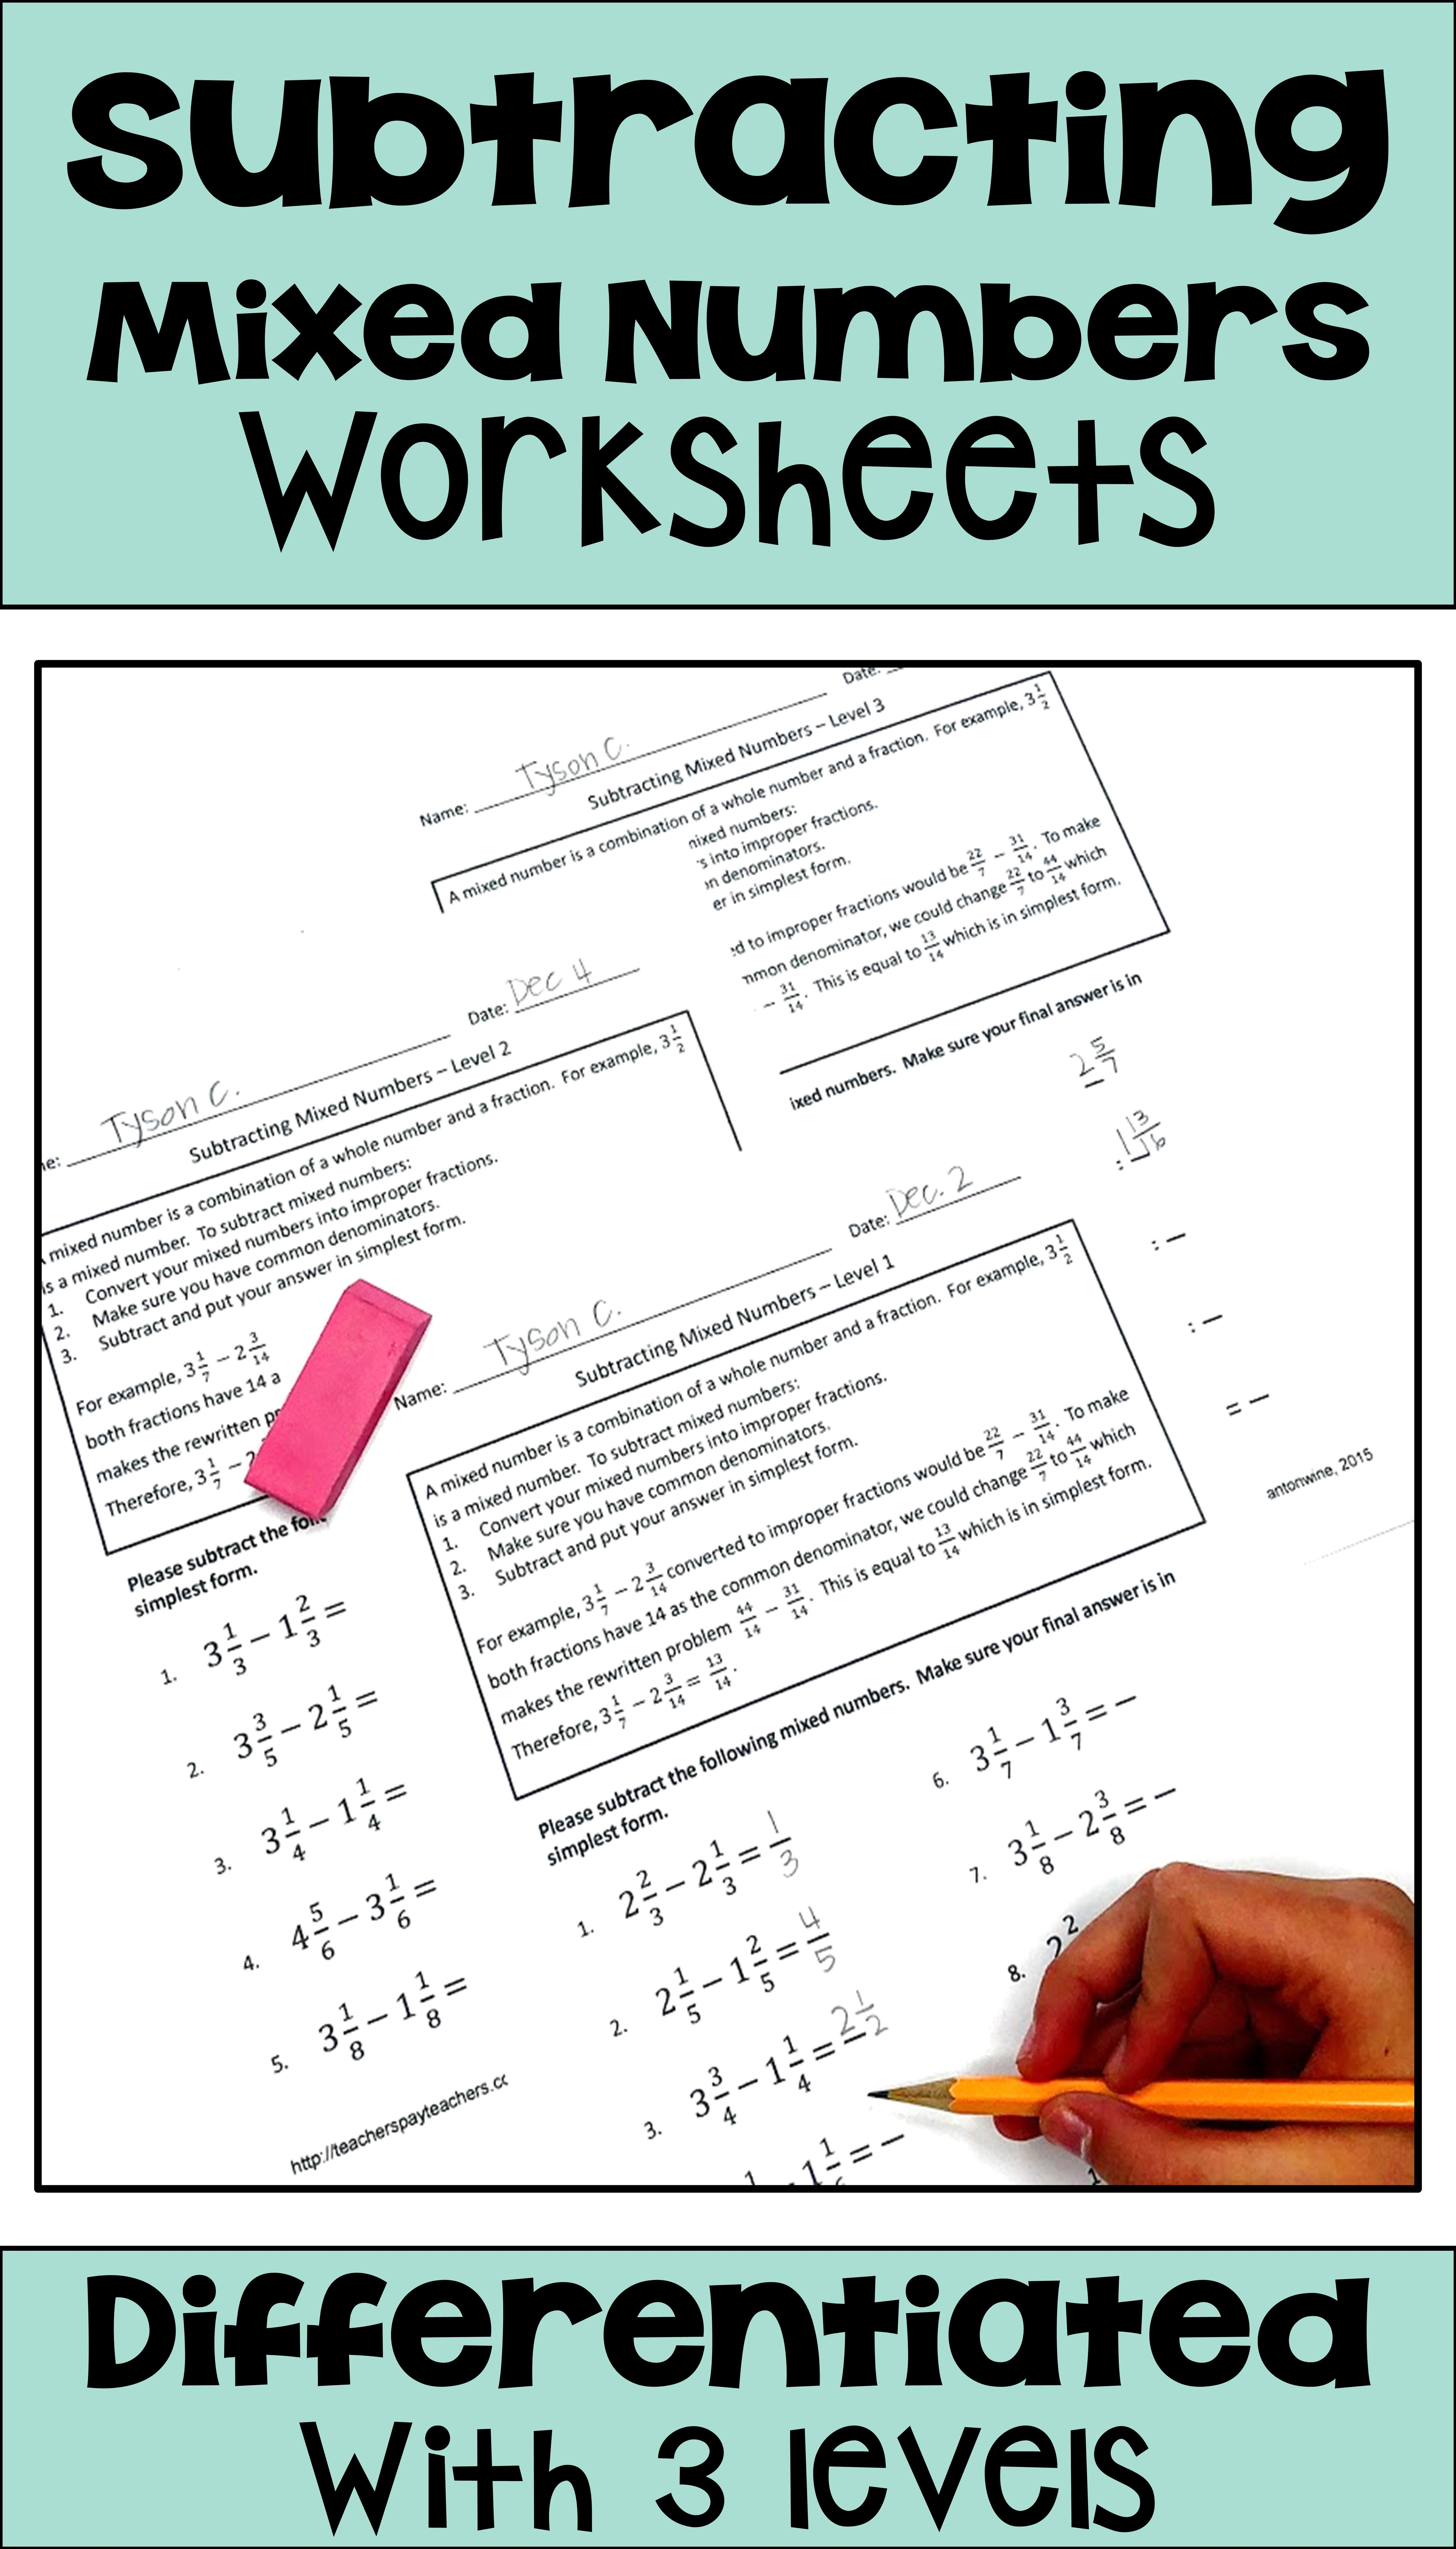 Subtracting Mixed Numbers Worksheets with Printable and Digital Options   Subtract  mixed numbers [ 10752 x 6144 Pixel ]